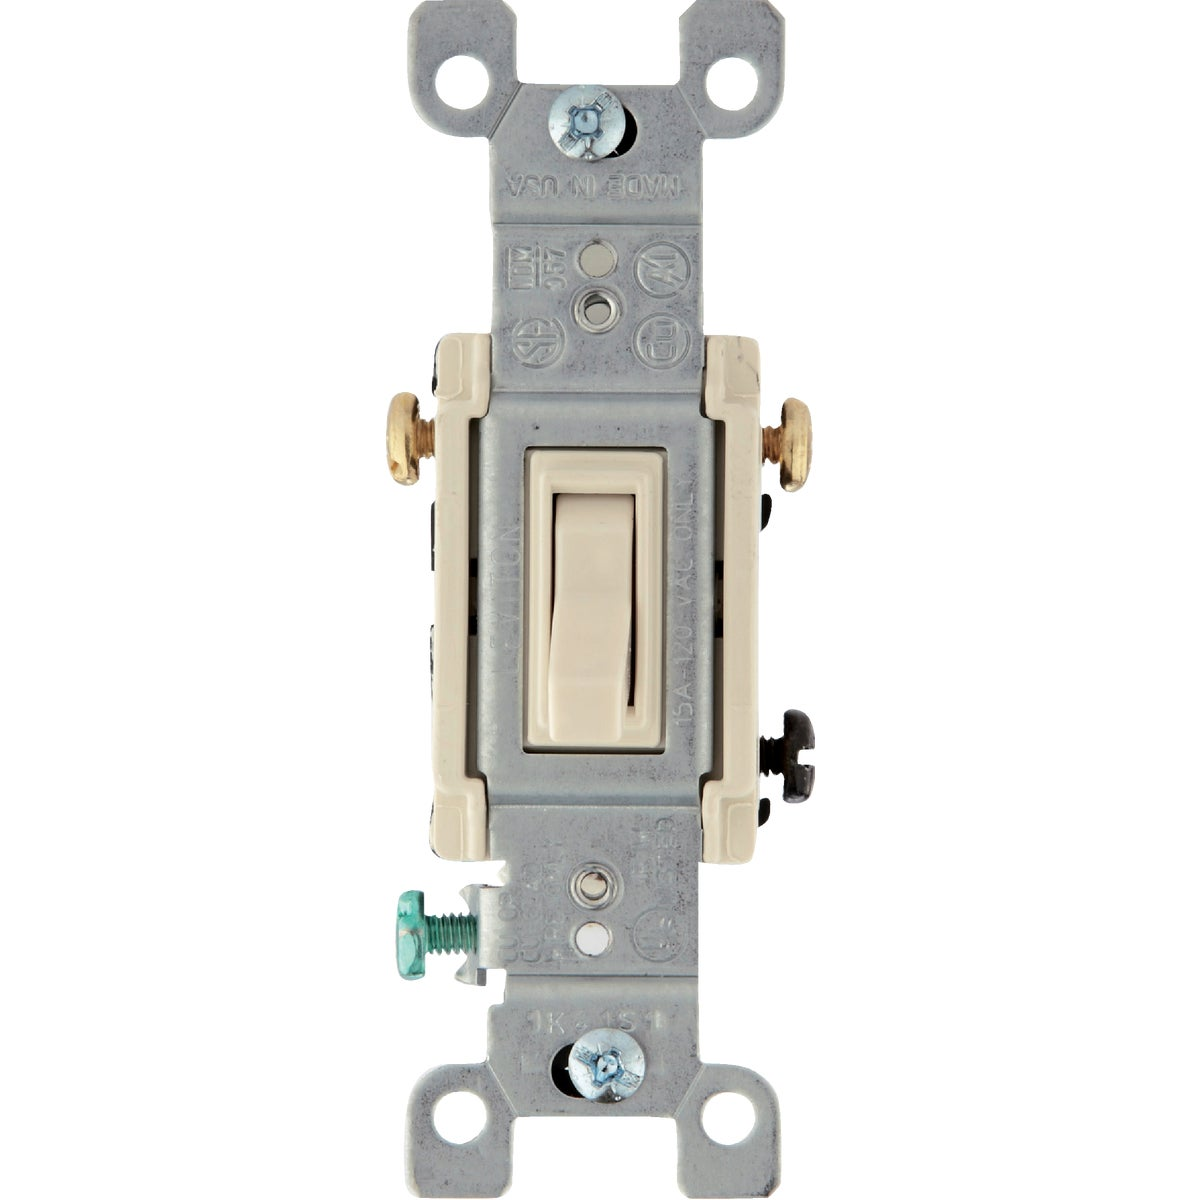 LT ALM 3 WAY SWITCH - 208-01453-02T by Leviton Mfg Co